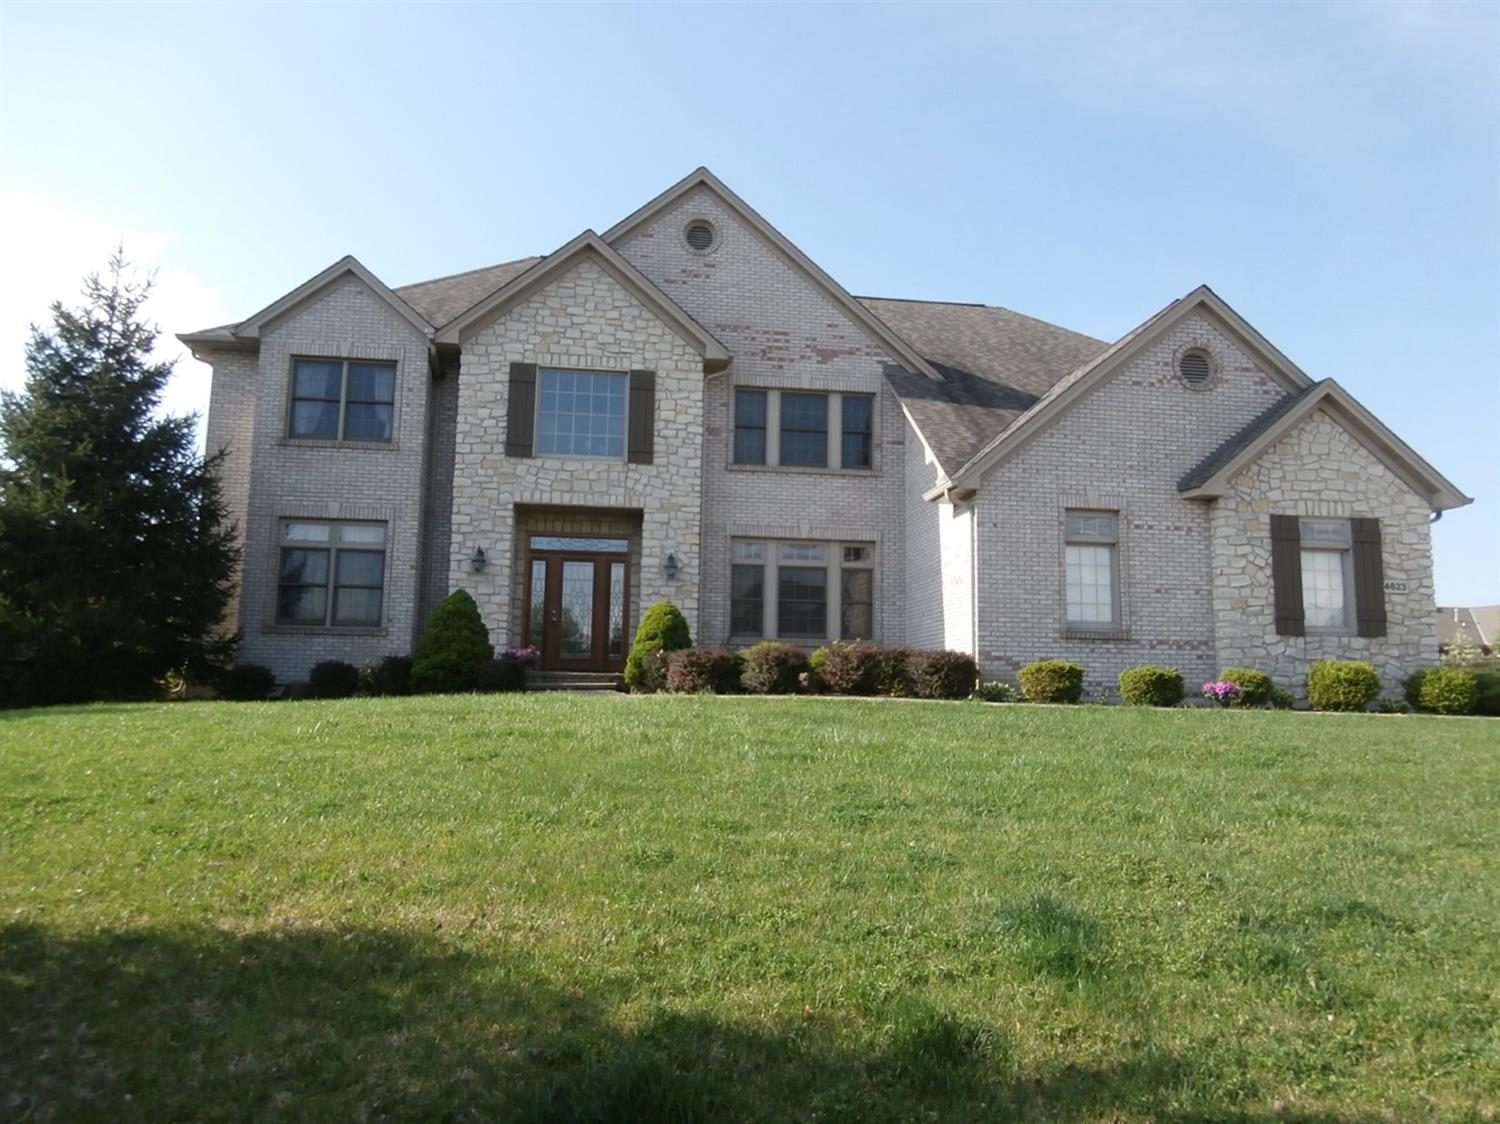 4623 Brighton Lane, West Chester, OH 45069